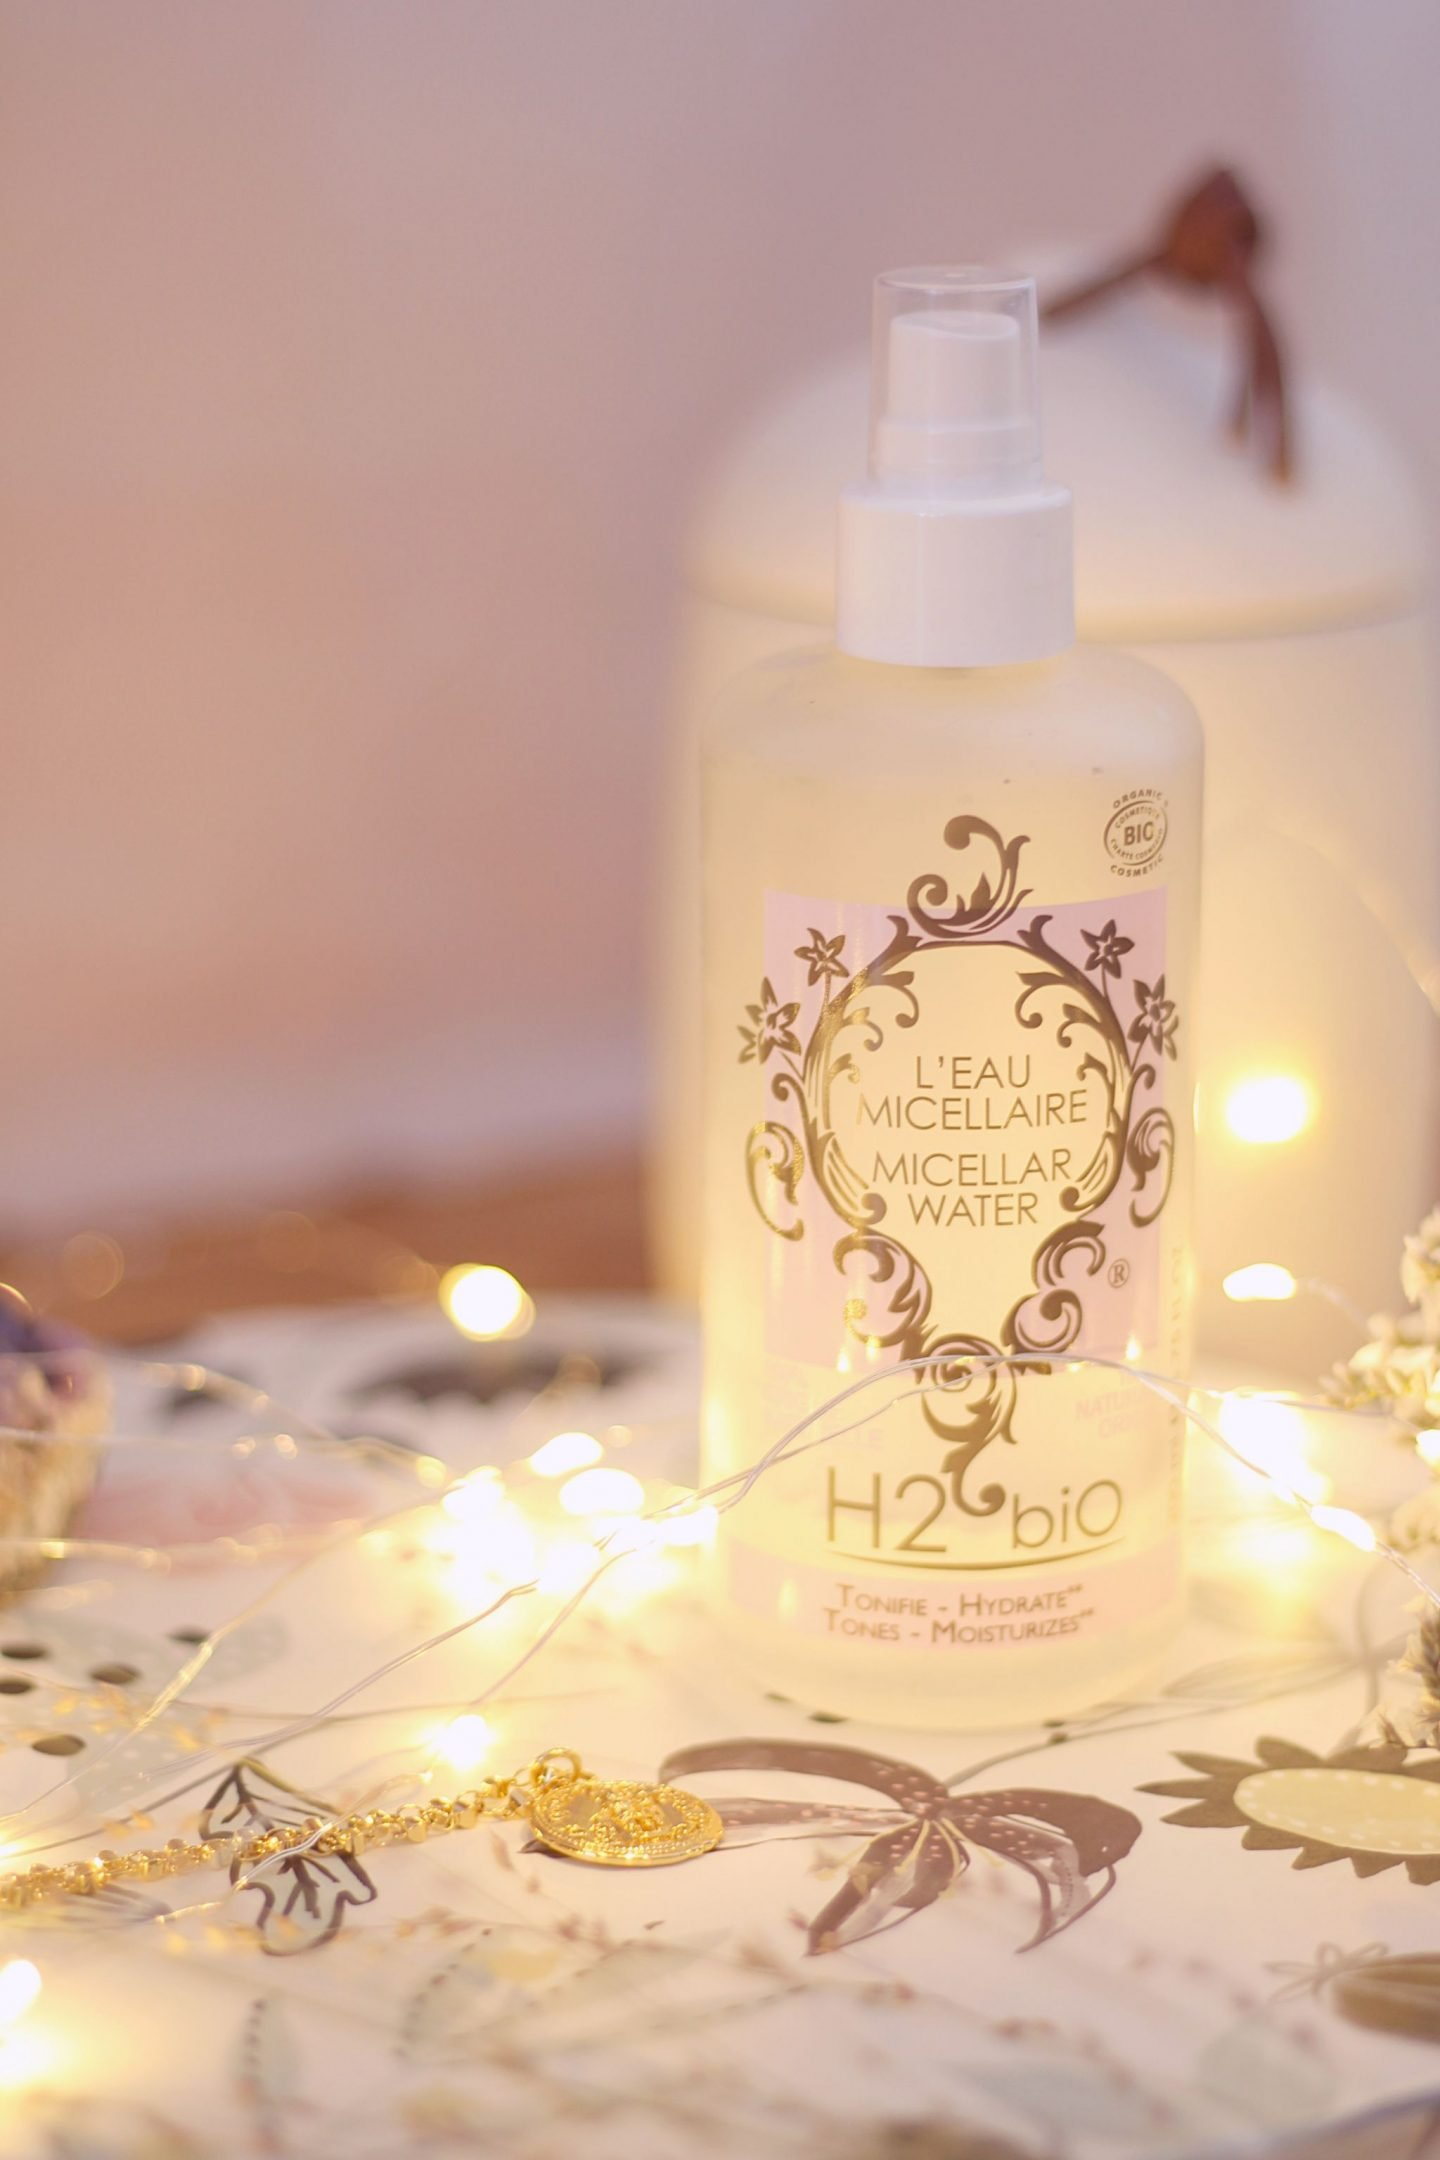 organic and green makeup cleanser